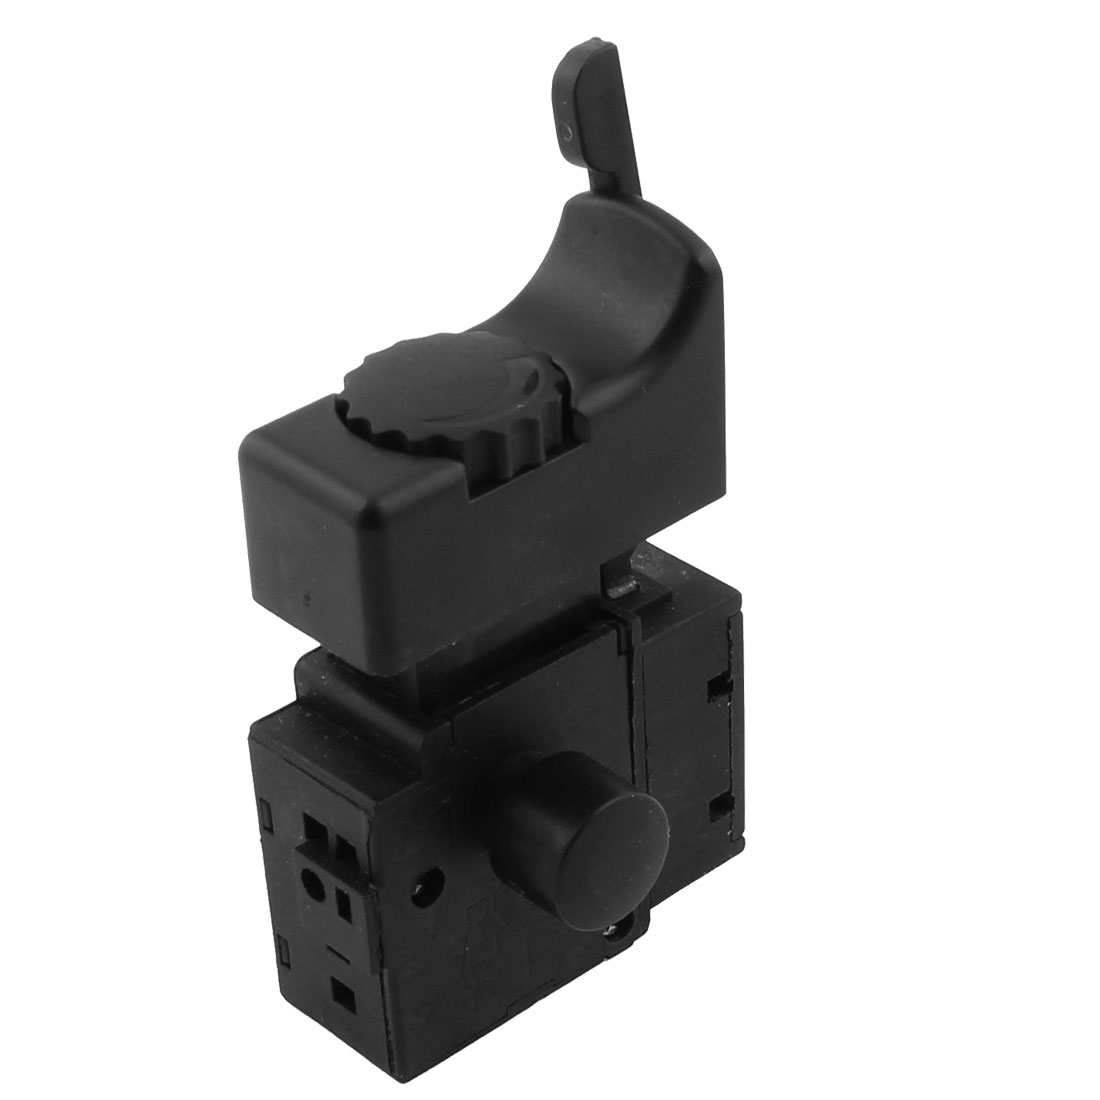 UXCELL Fa2-6/1Bek Ac 250V 6A Locking Electric Drill Speed Control Trigger Switch Black switch | trigger ac 250v 20a normal close 60c temperature control switch bimetal thermostat